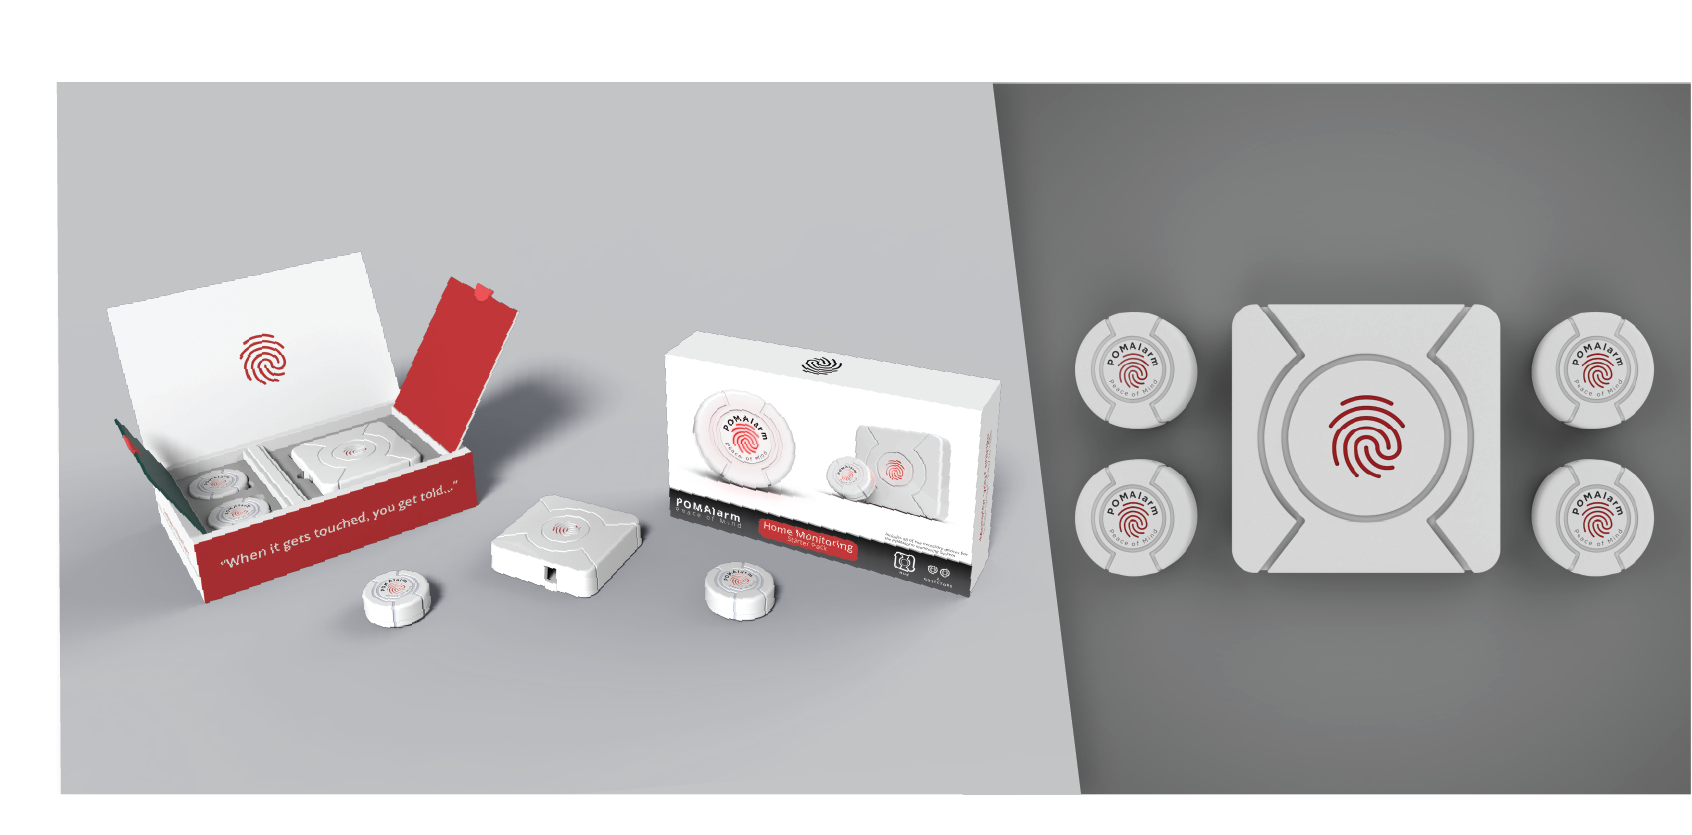 POMAlarm, Smart Security System and Product Packaging